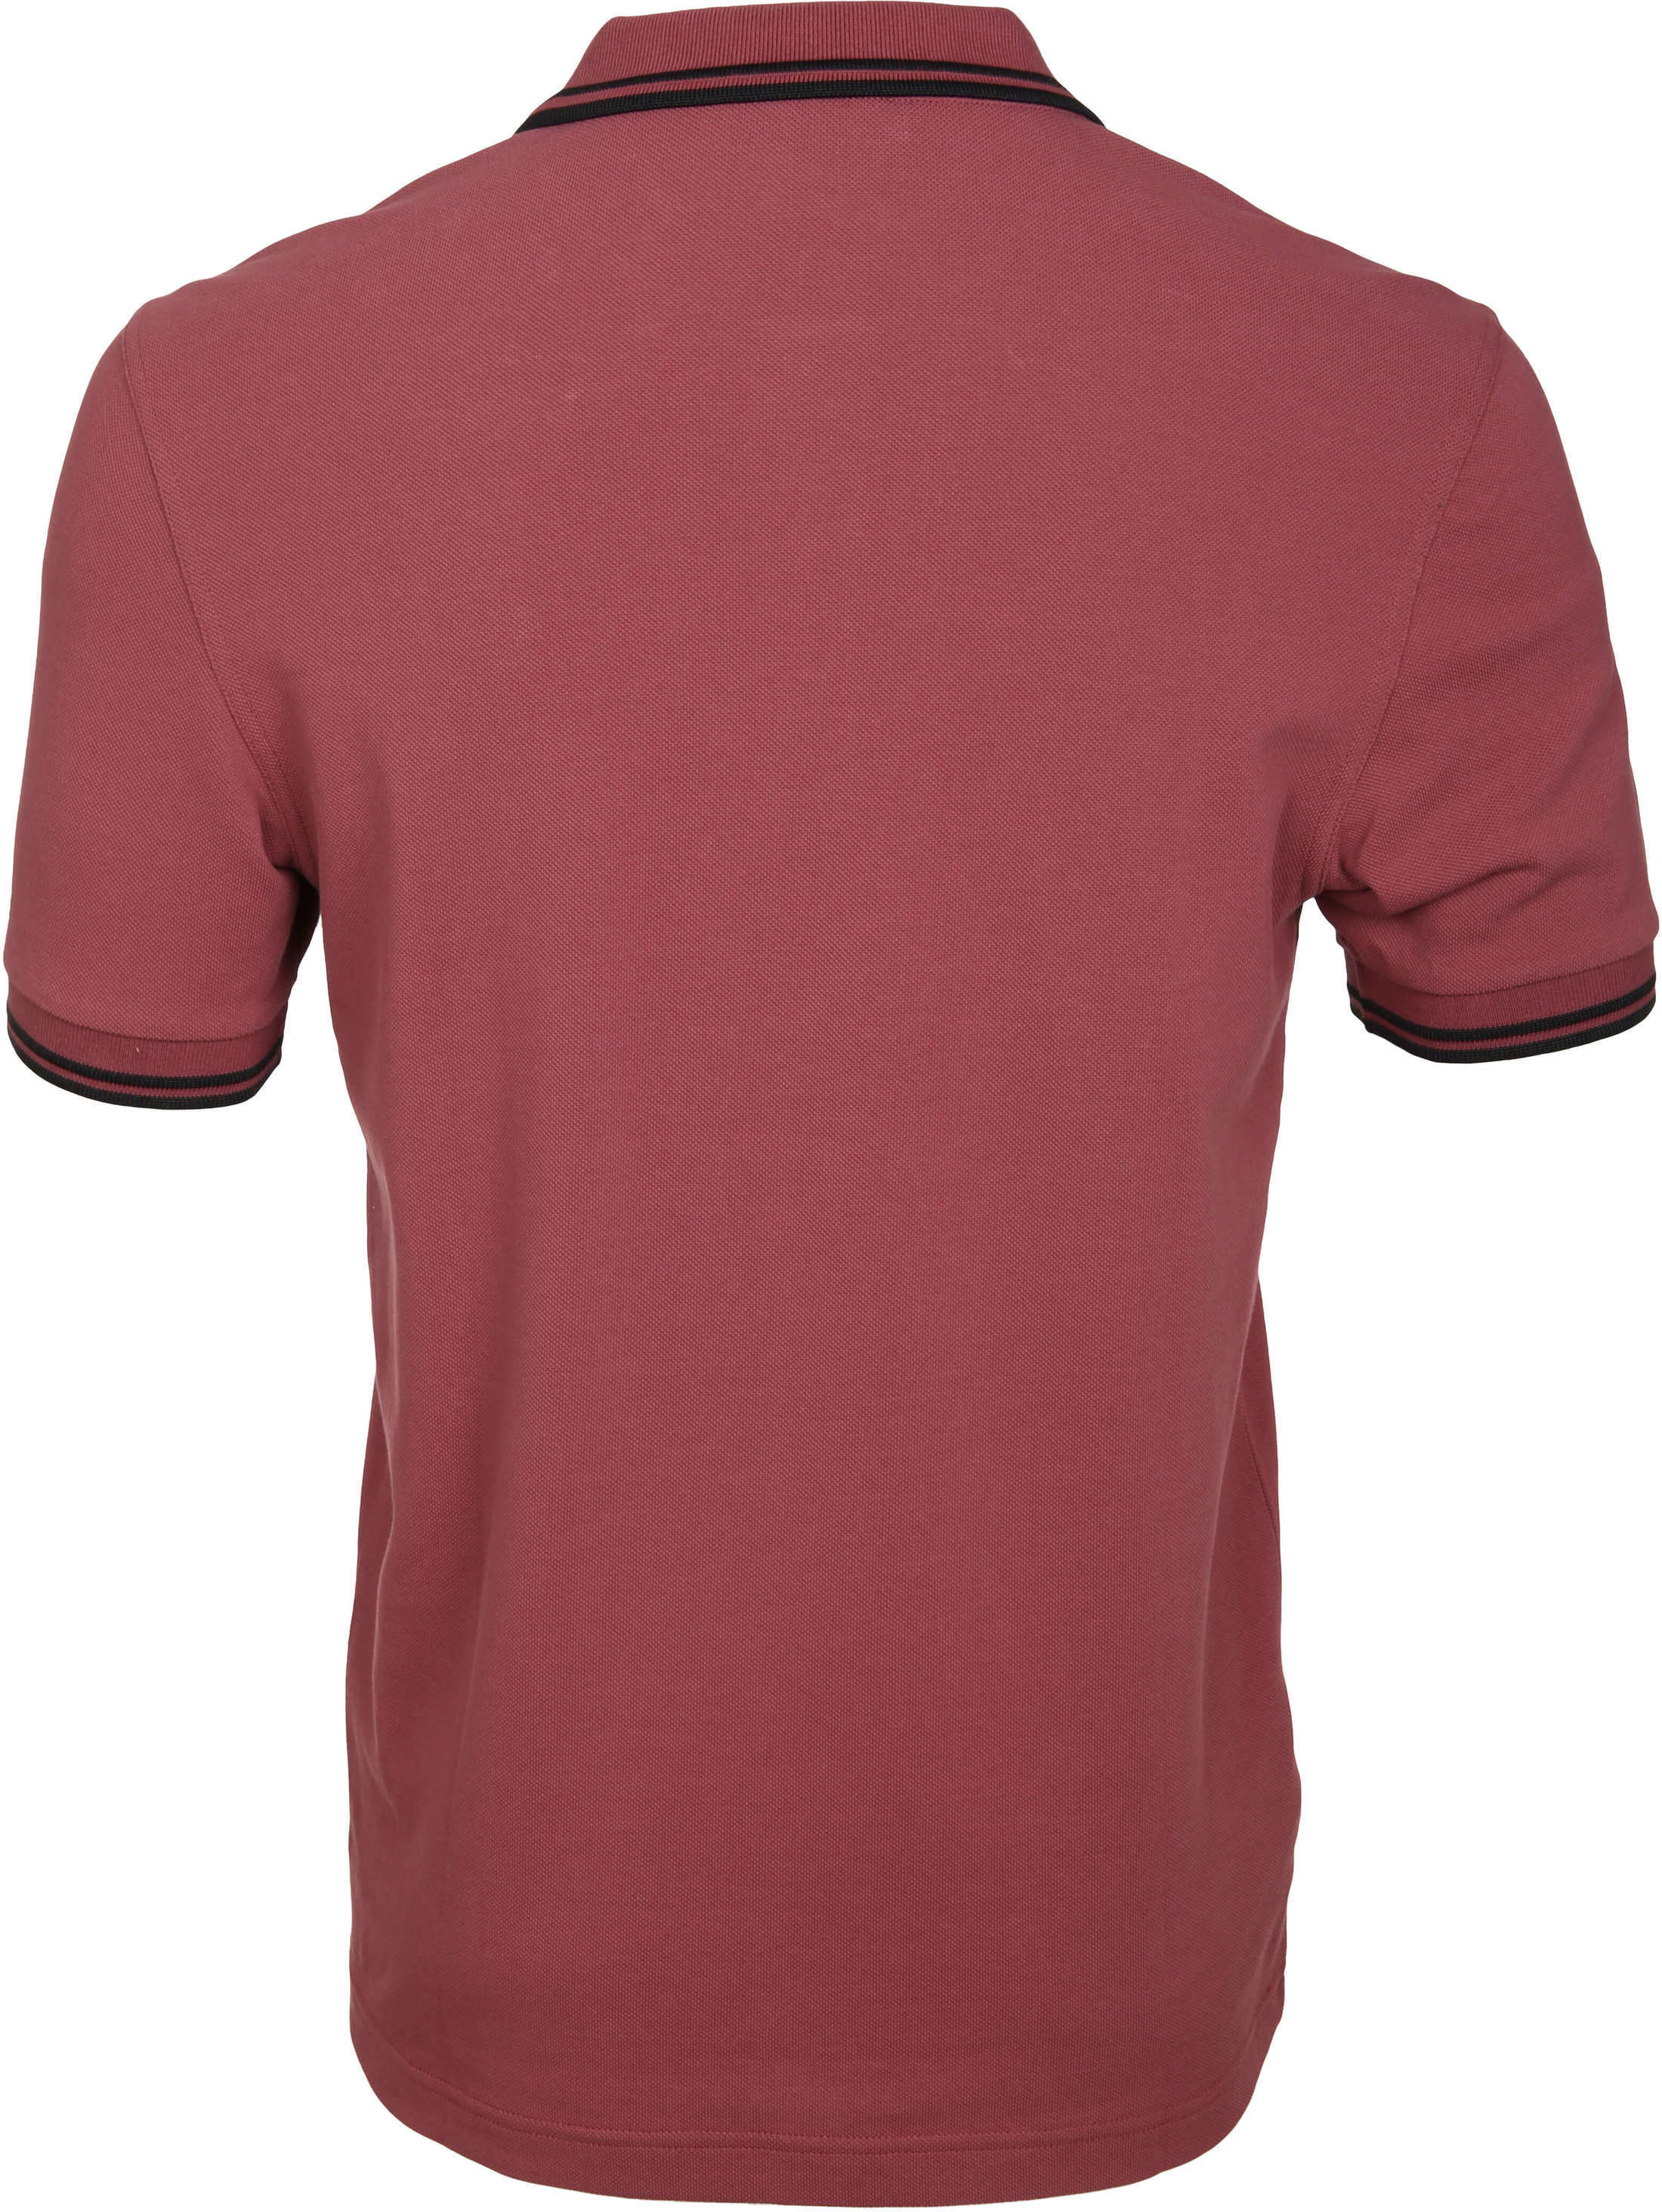 Fred Perry Poloshirt G36 Rot foto 2